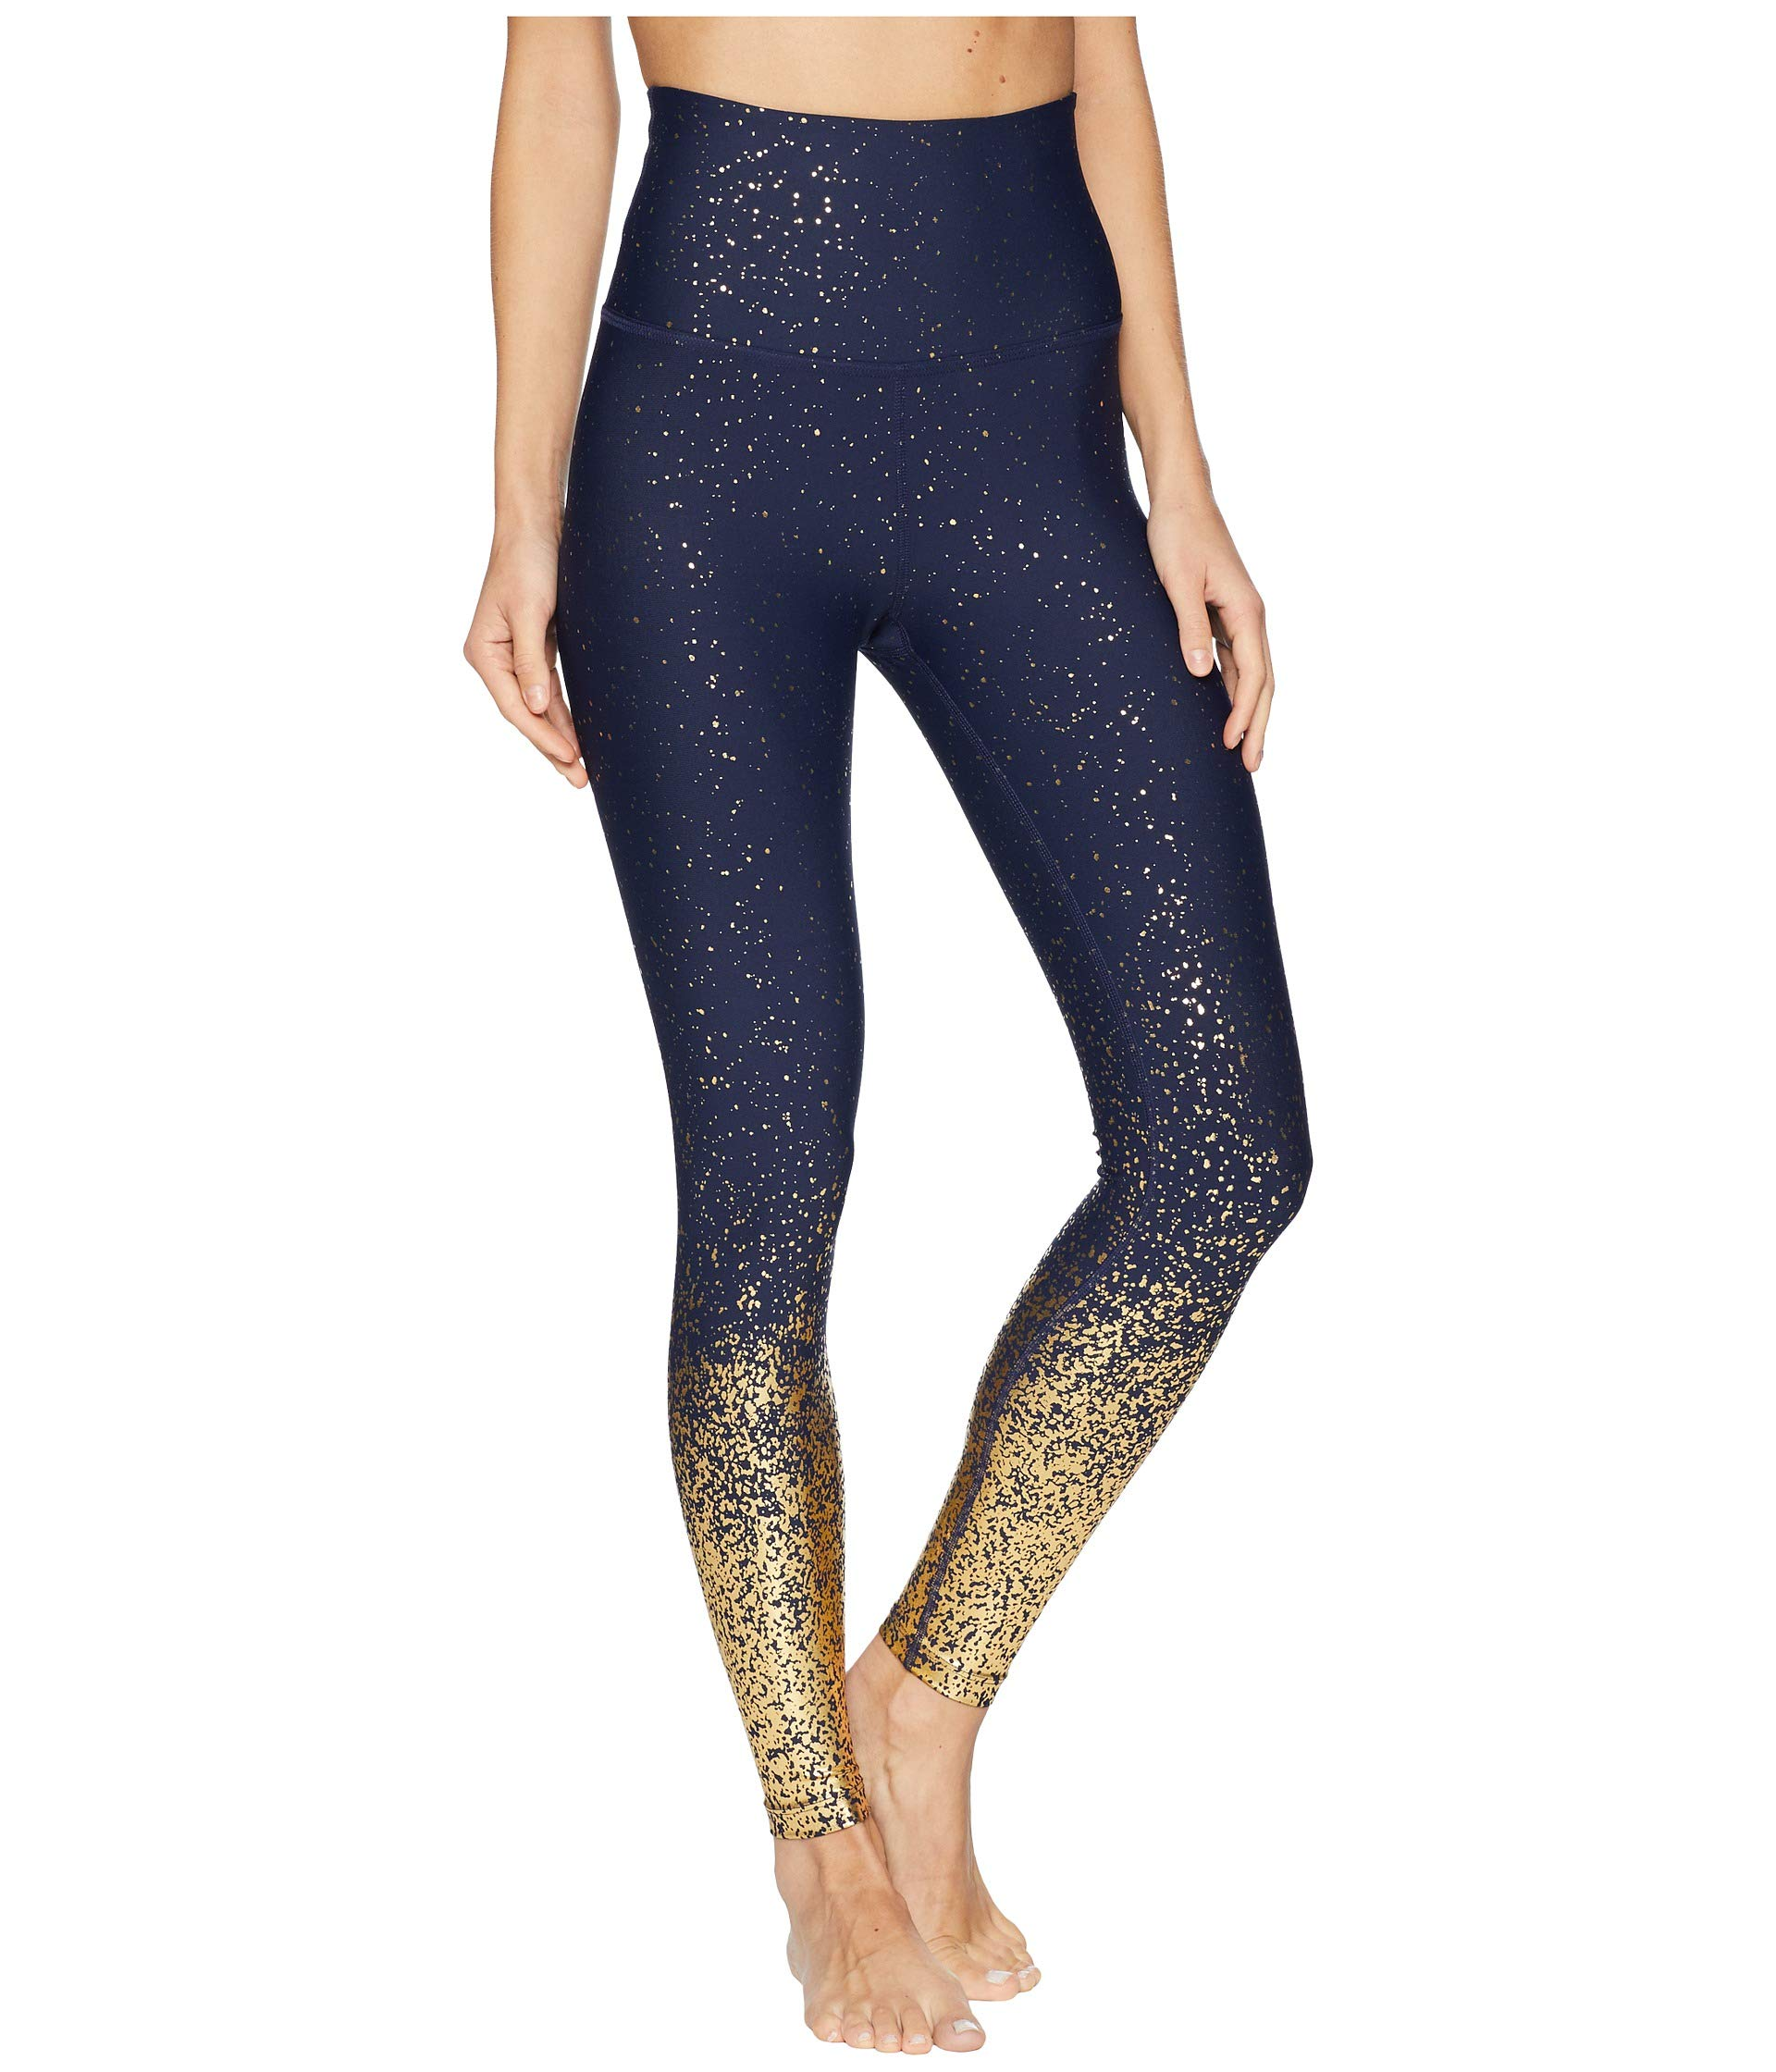 Beyond Yoga Women's Alloy Ombre High-Waisted Midi Leggings Navy/Gold Speckle Small 25.5 25.5